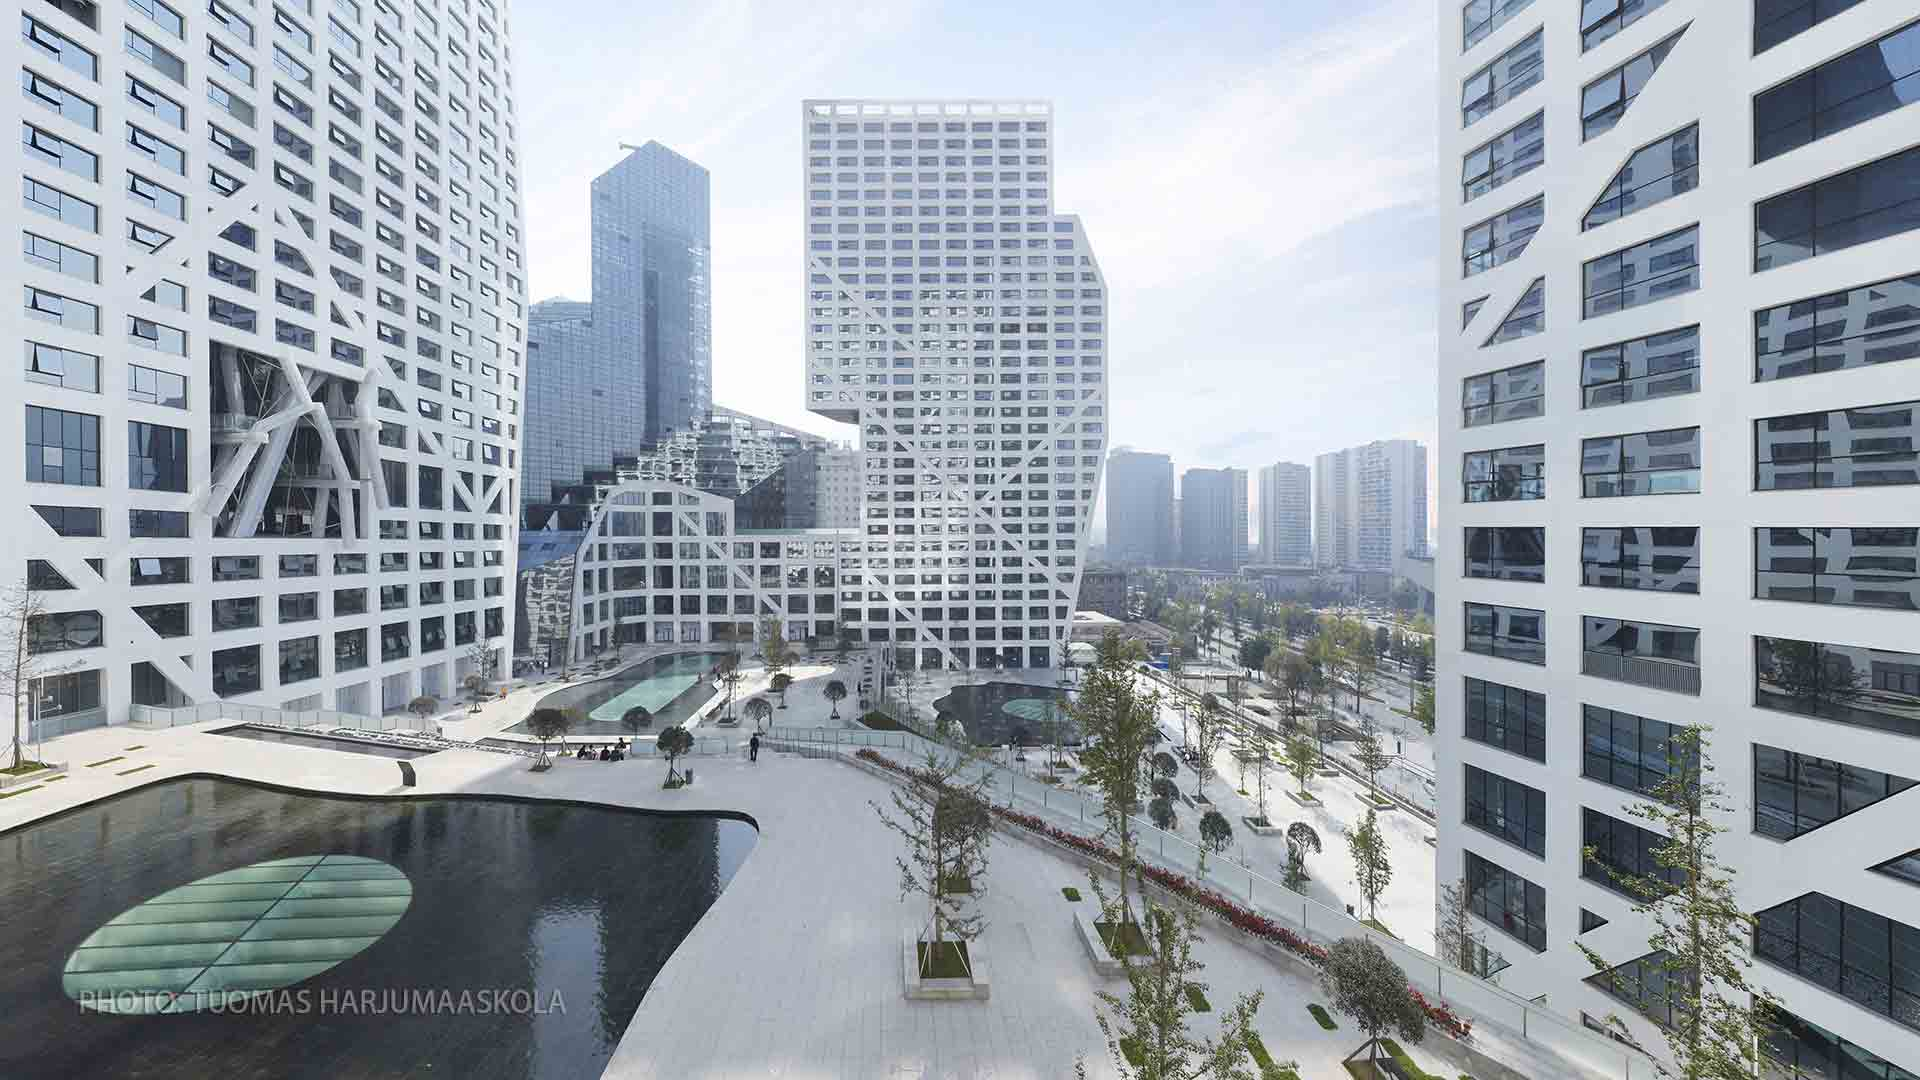 Photograph of a commercial center in Chengdu, China